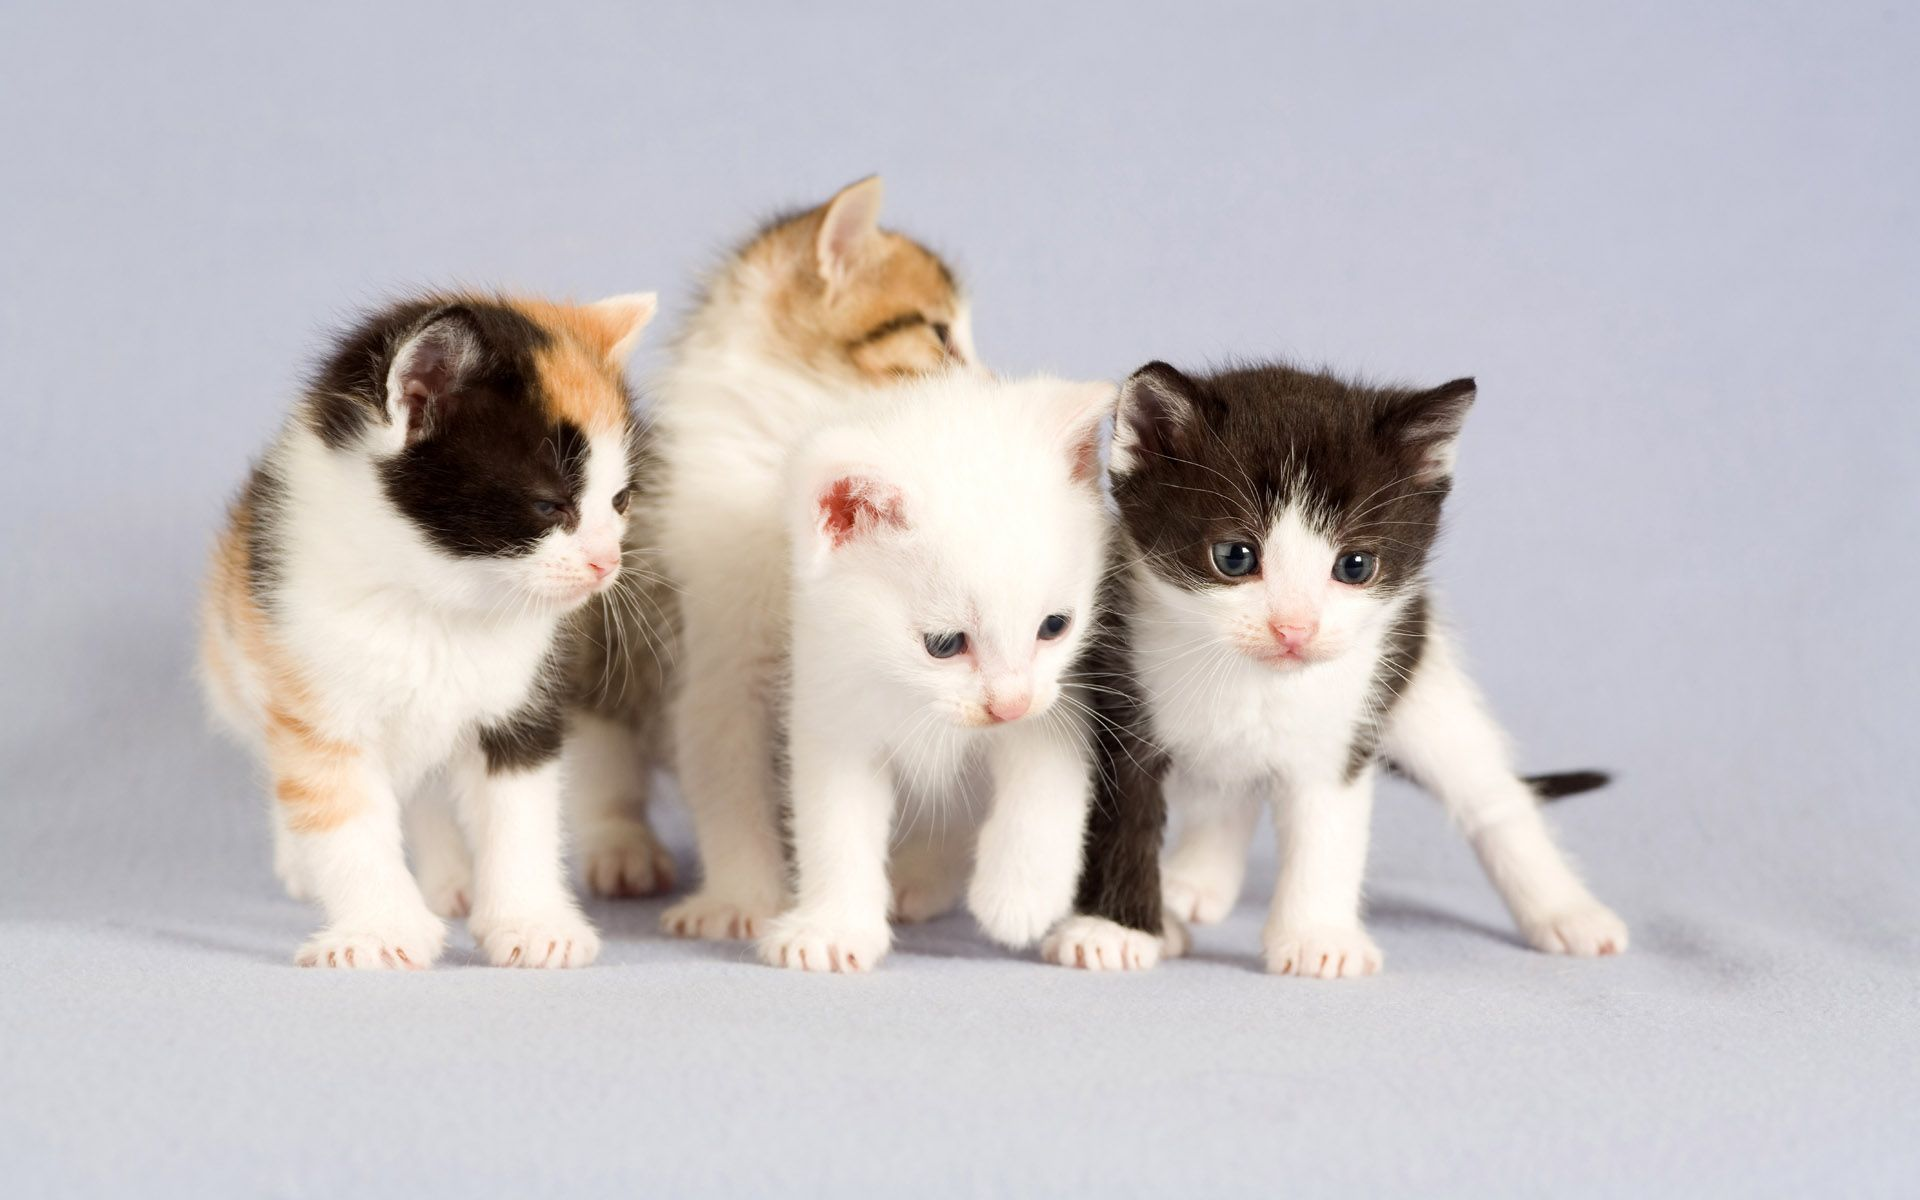 Cute Cats Wallpapers Full Hd Wallpaper Search Page 2 Baby Cats Cute Animals Cute Baby Cats